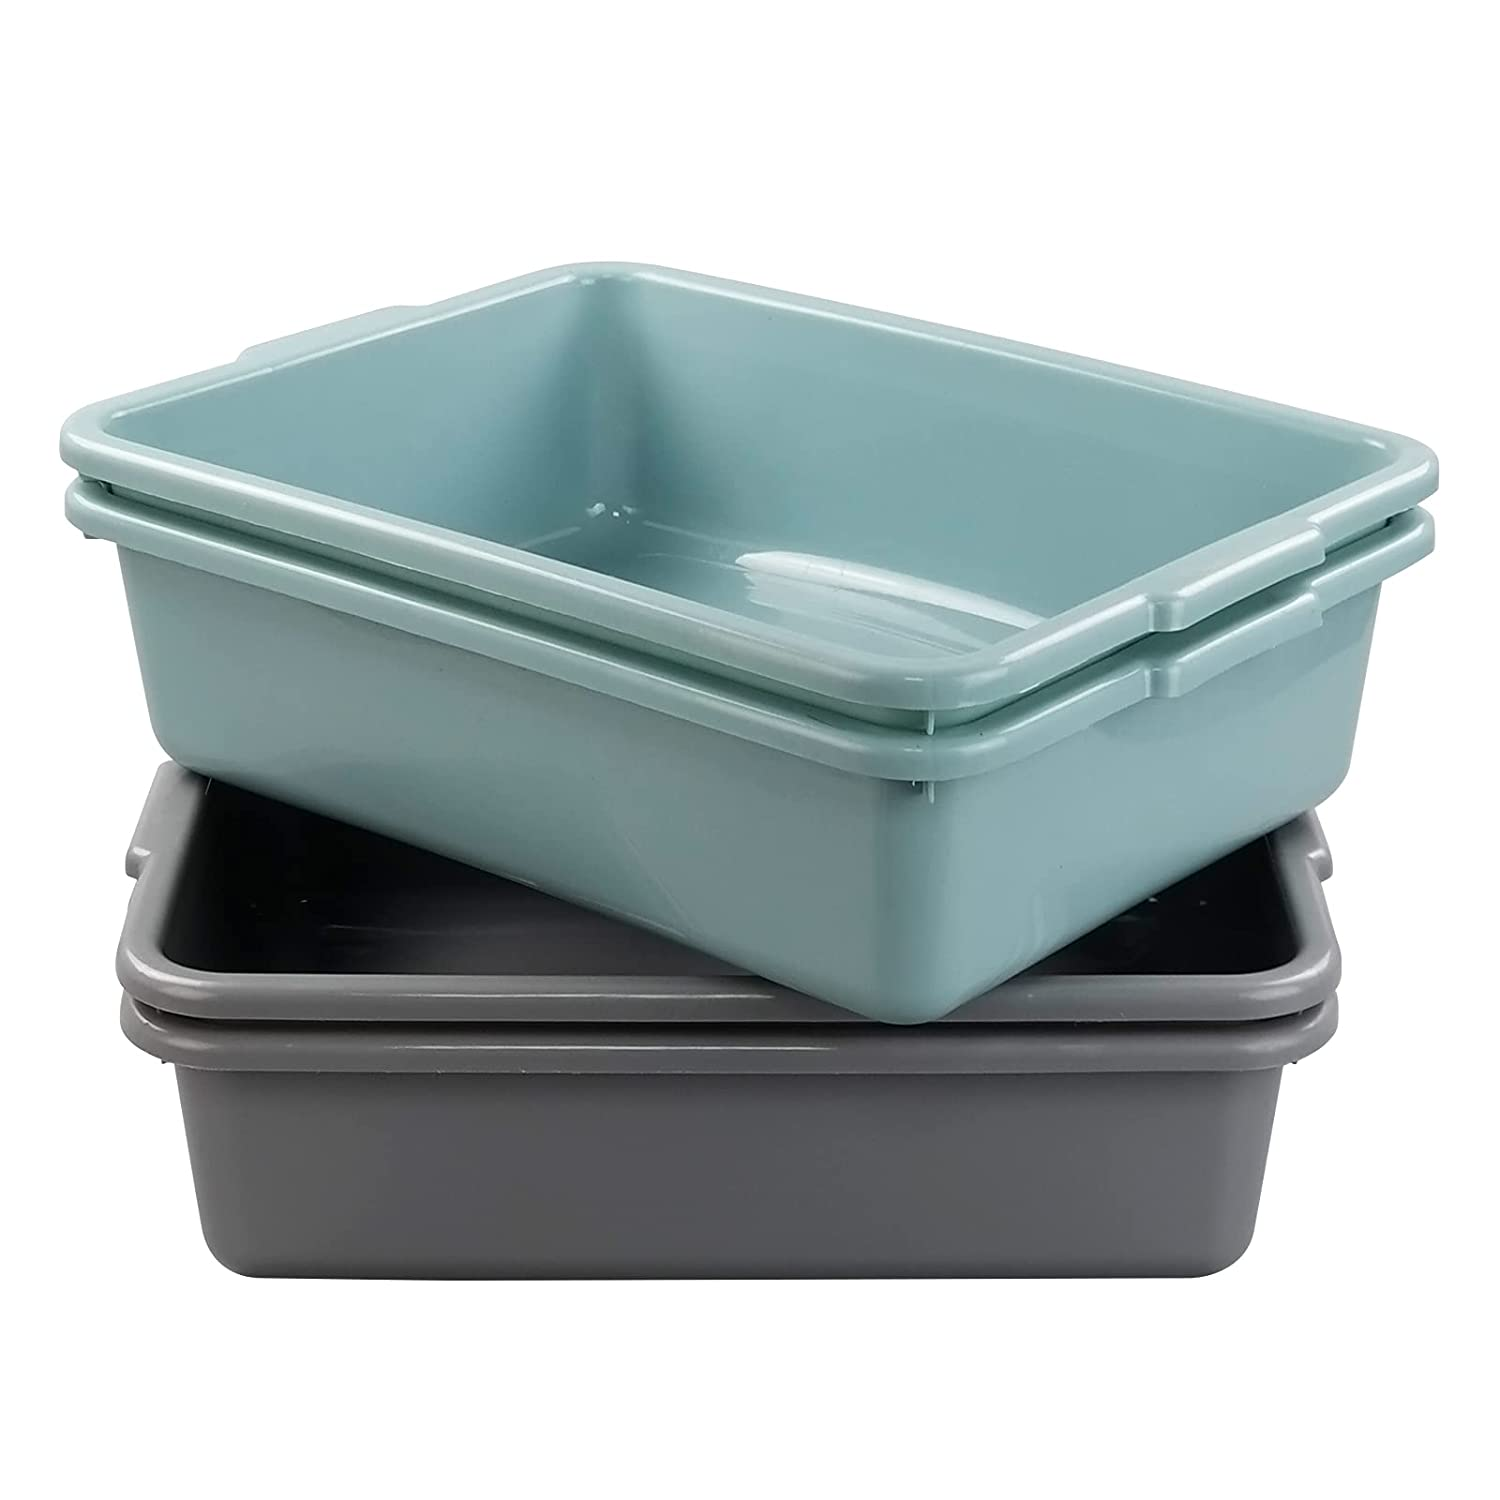 Xyskin Some reservation 4 Packs Excellent Plastic Commercial Tubs Utility Rectangle Bus Bu